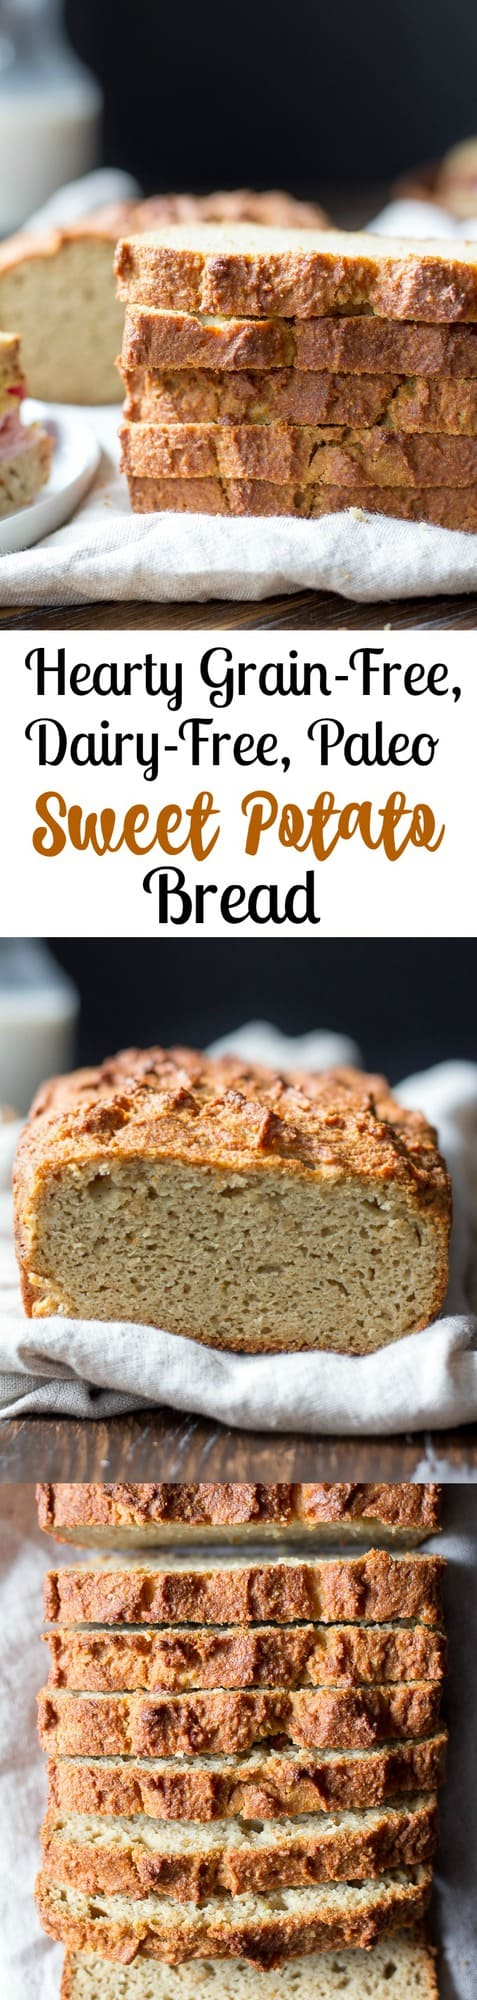 hearty-paleo-sweet-potato-bread